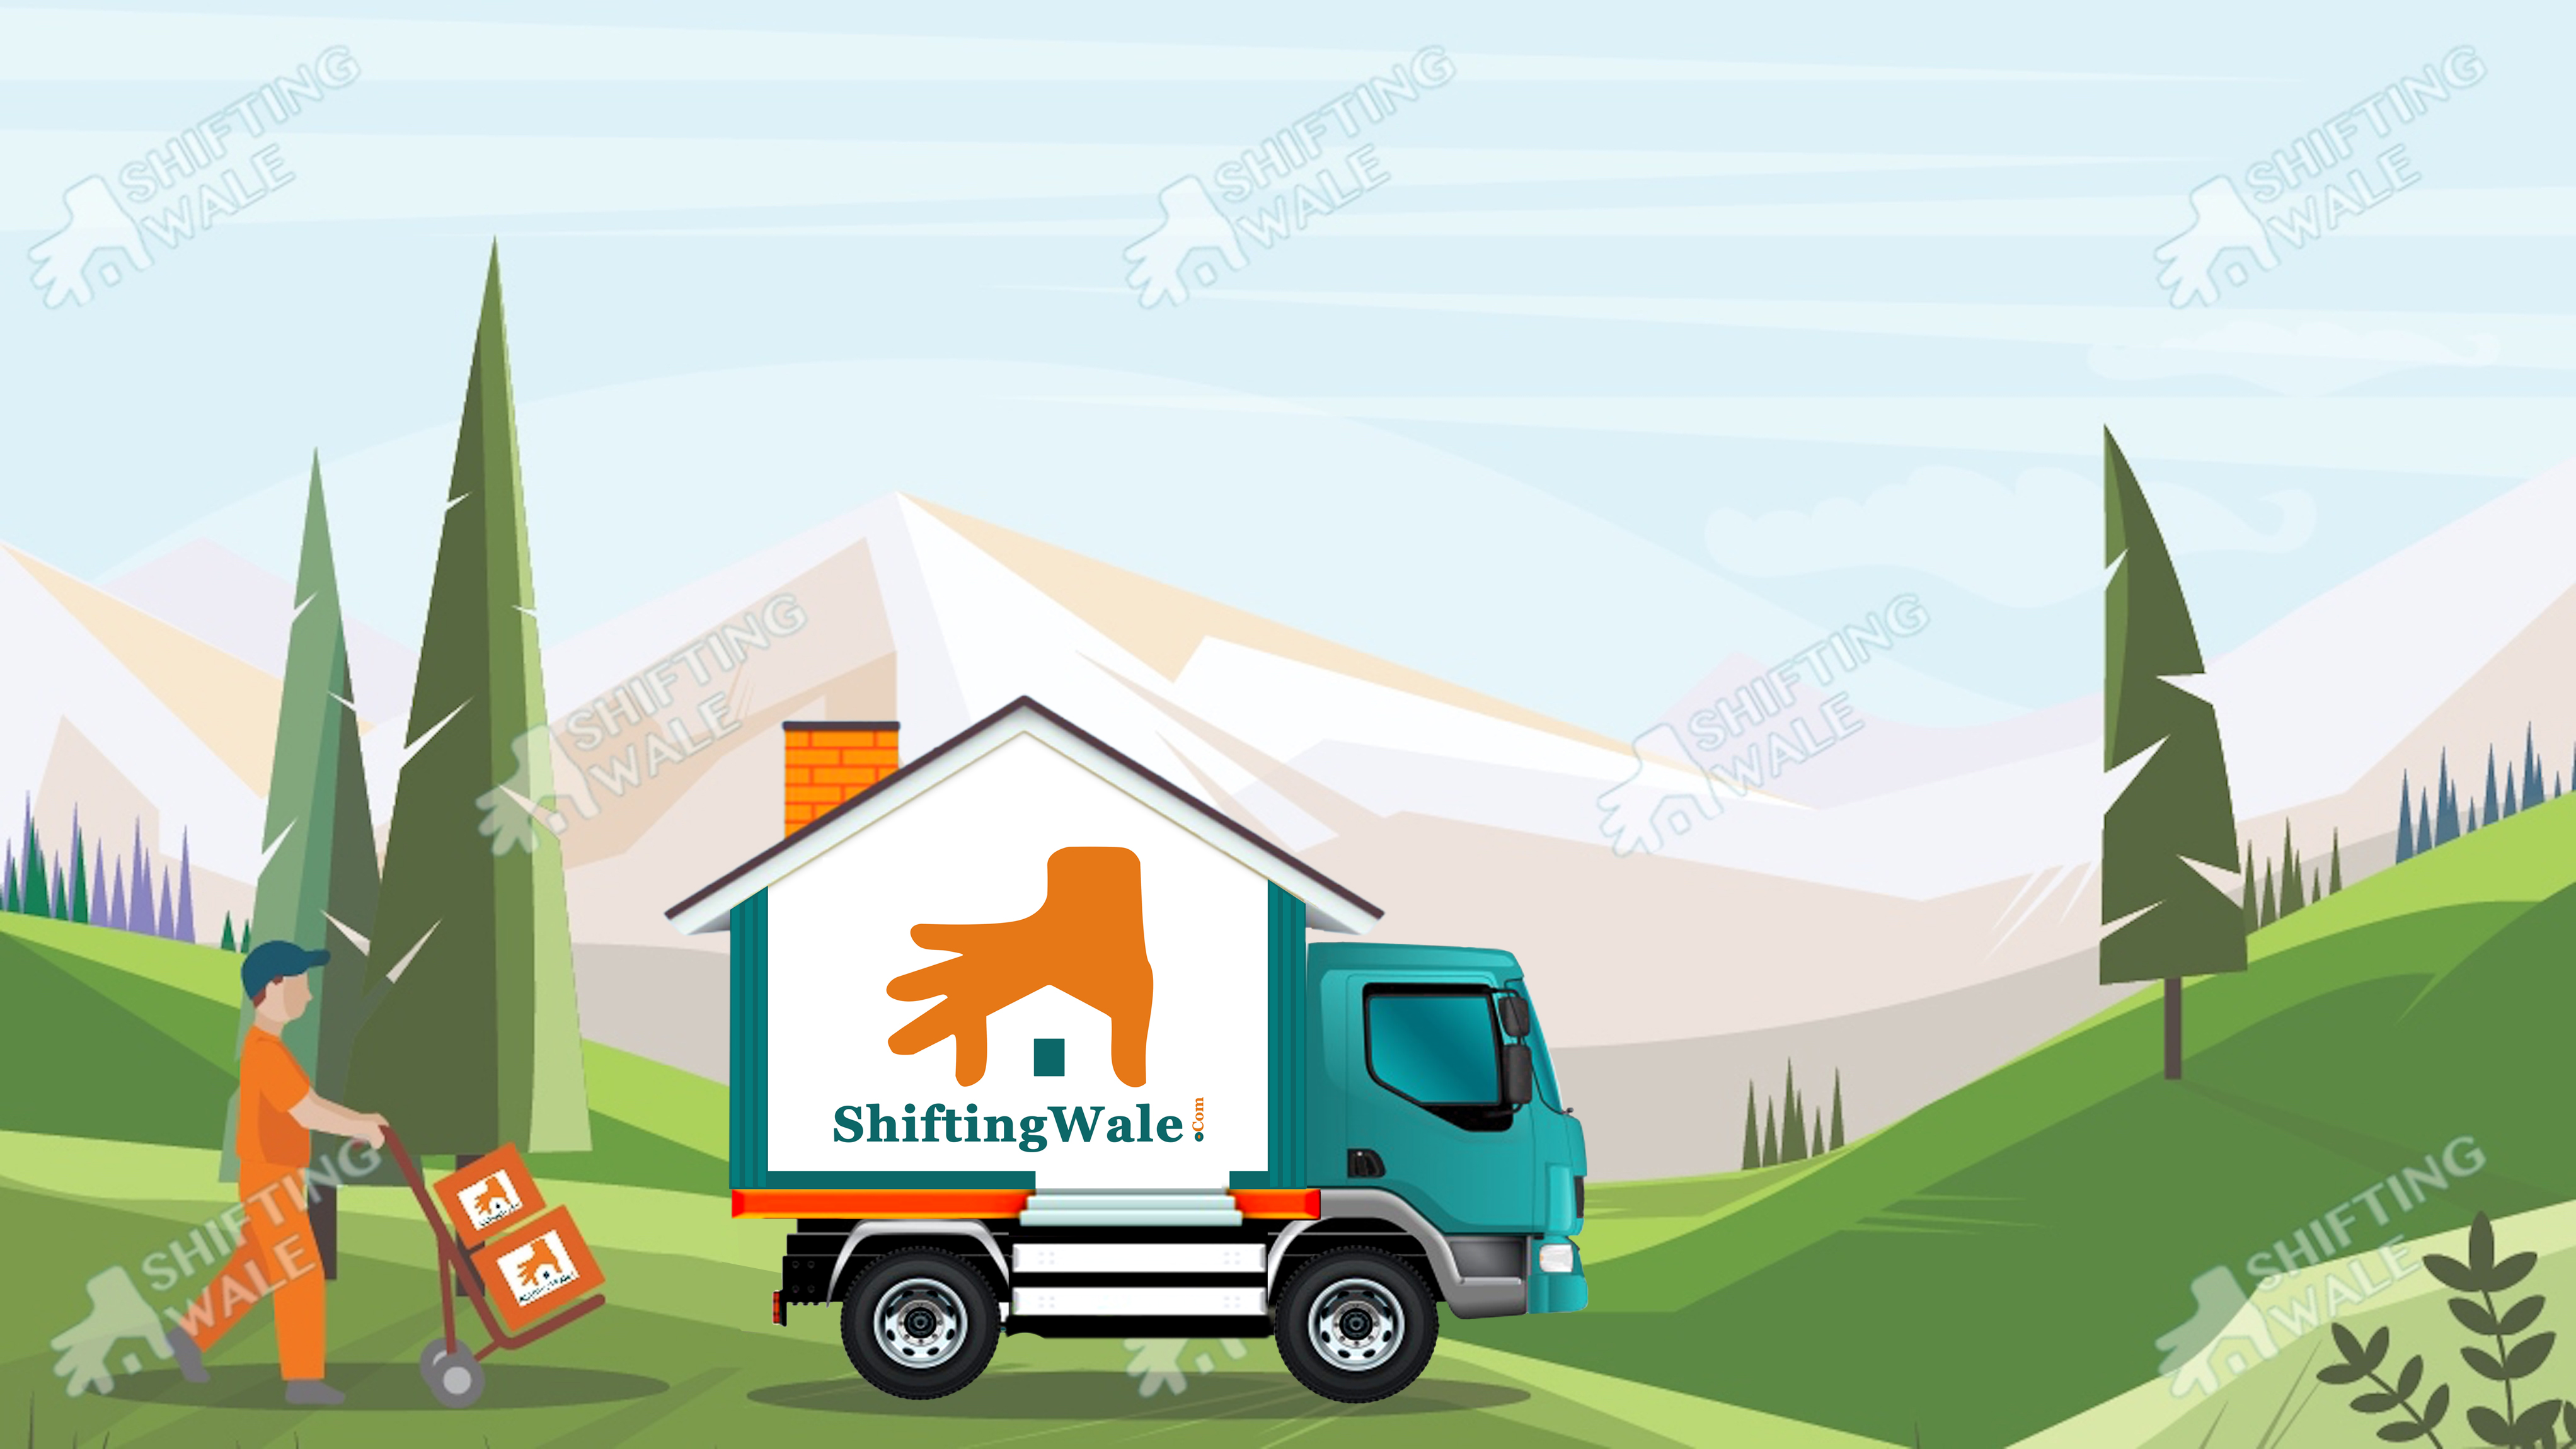 Need Packers and Movers for Household Goods Car from Delhi Gurgaon Noida Ghaziabad to Hyderabad Bangalore Chennai